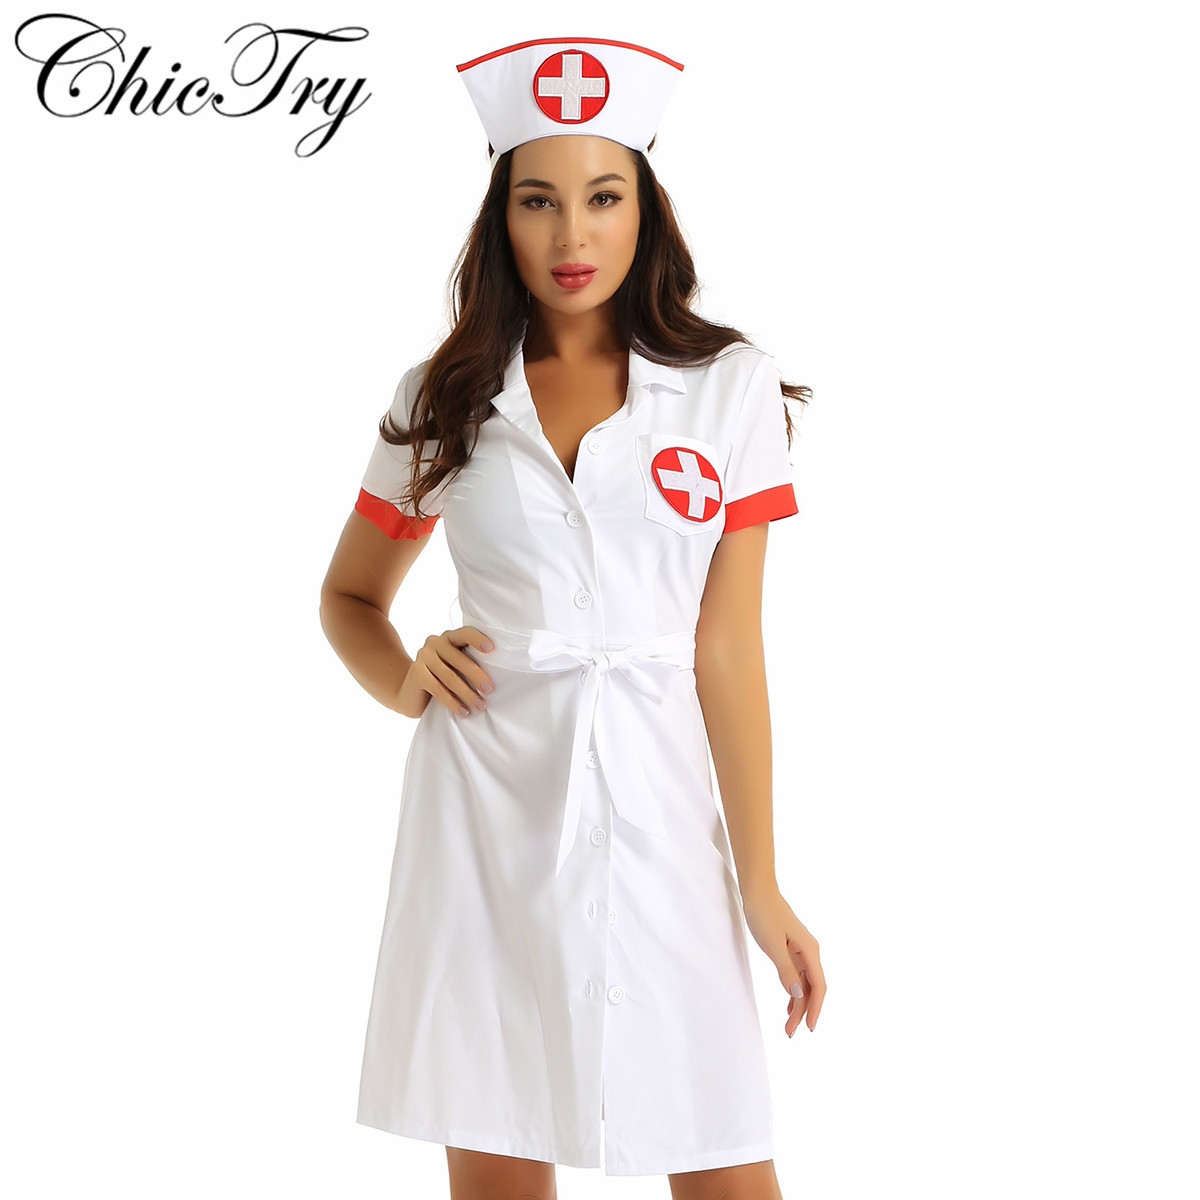 Novelty  Props Nurses Doctor Medical Hen Party Fancy Dress Accessory